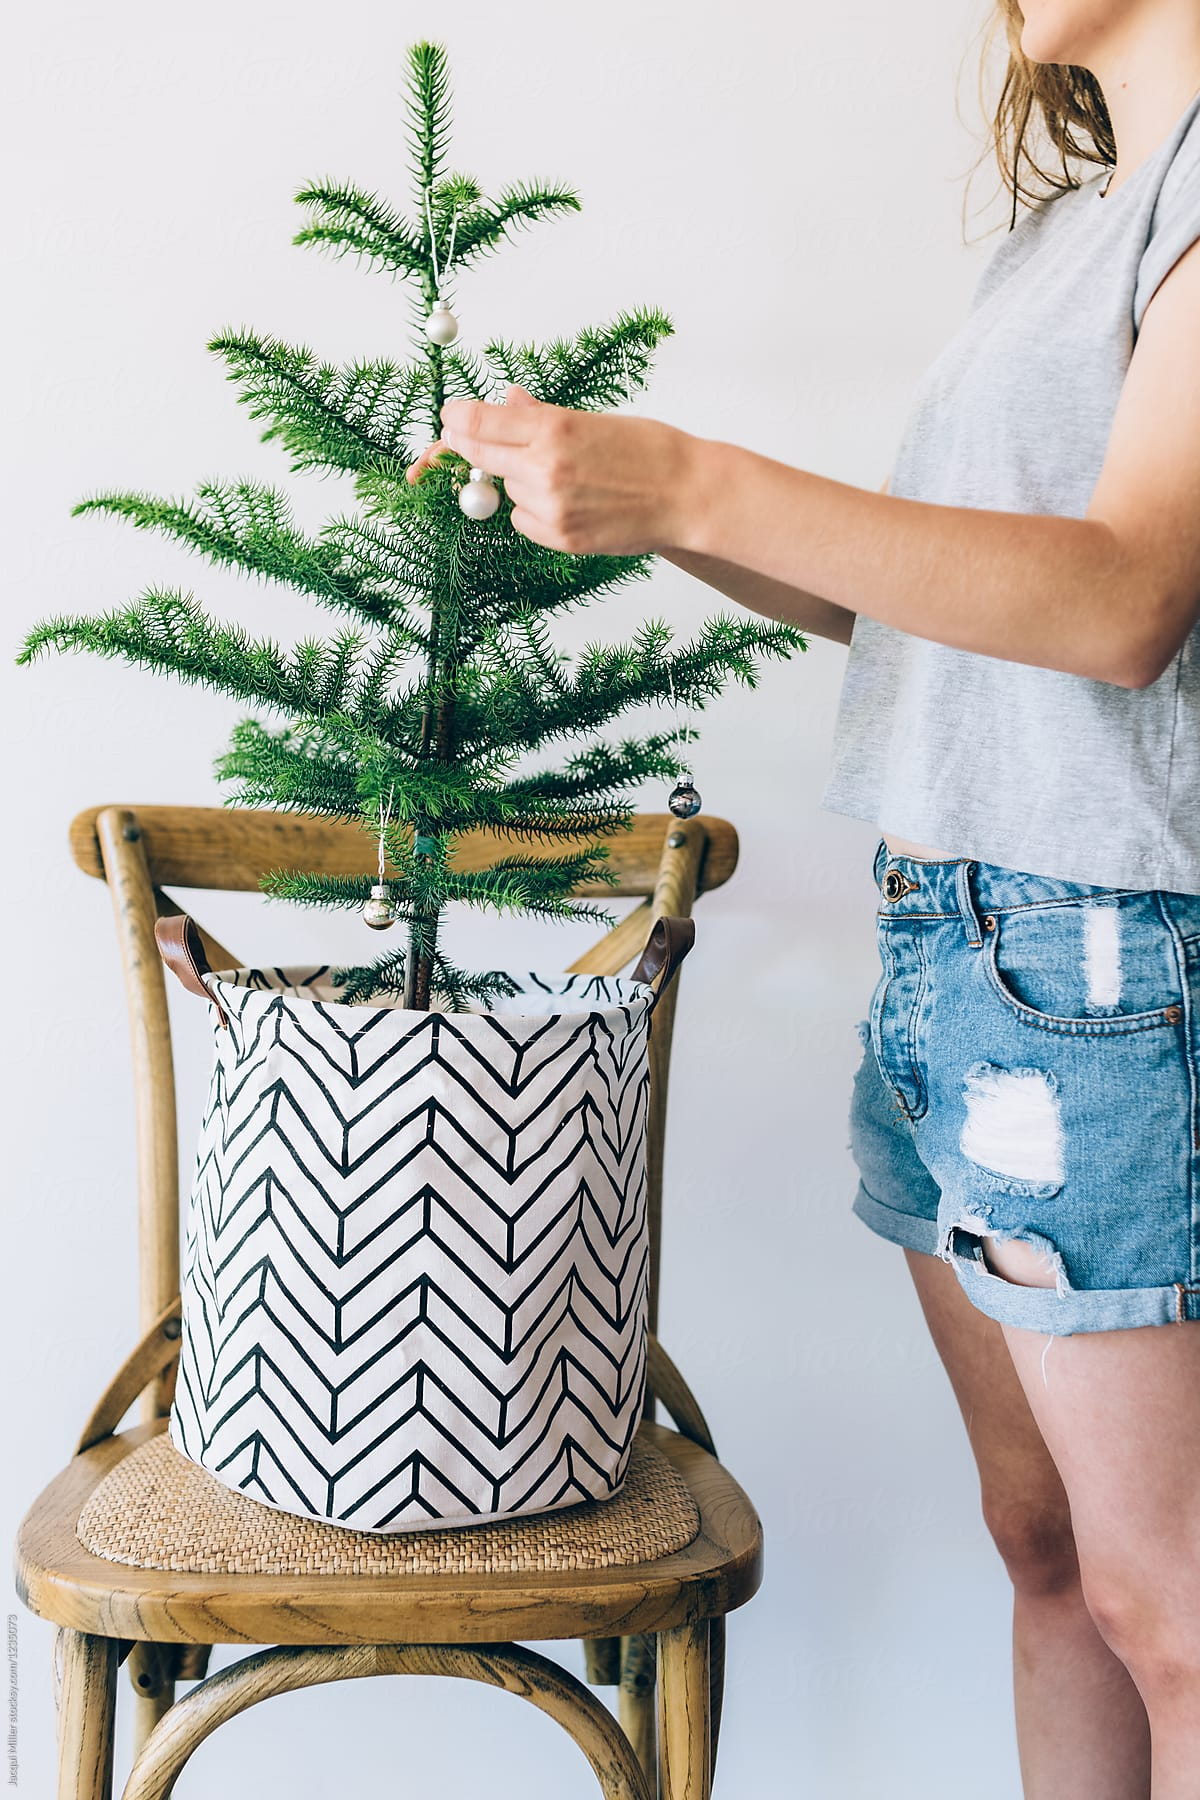 Teenage Girl Decorating Small Norfolk Island Pine Christmas Tree In ...